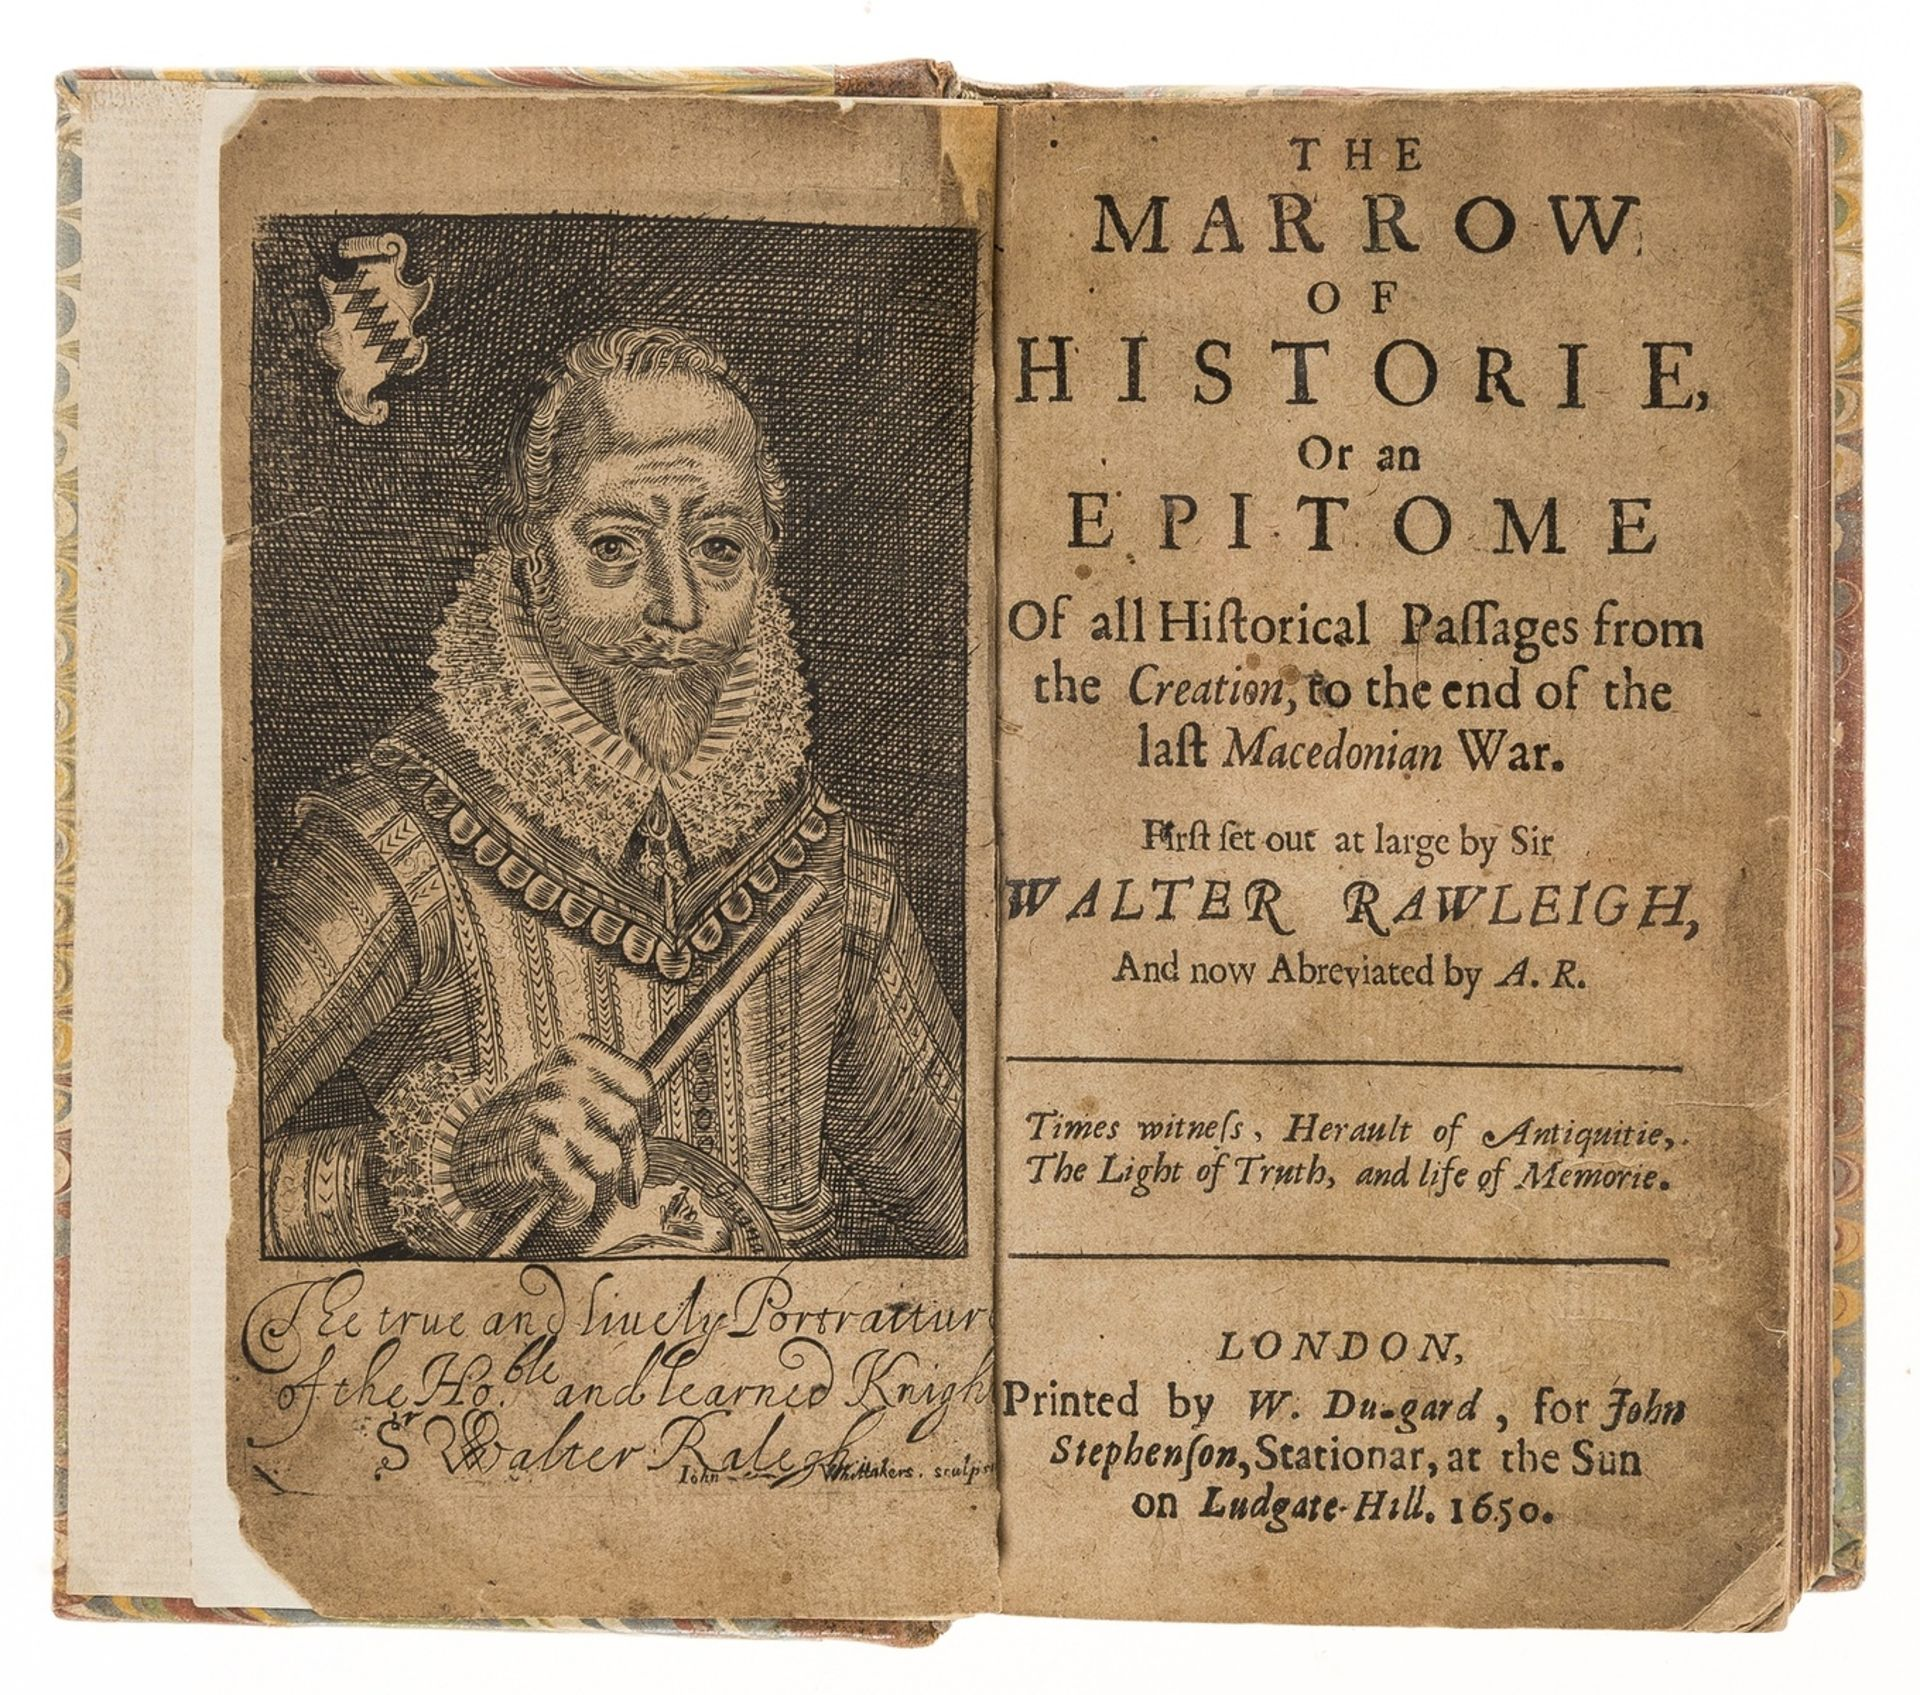 Raleigh (Sir Walter) The Marrow of Historie, or an Epitome of all Historical Passages from the …